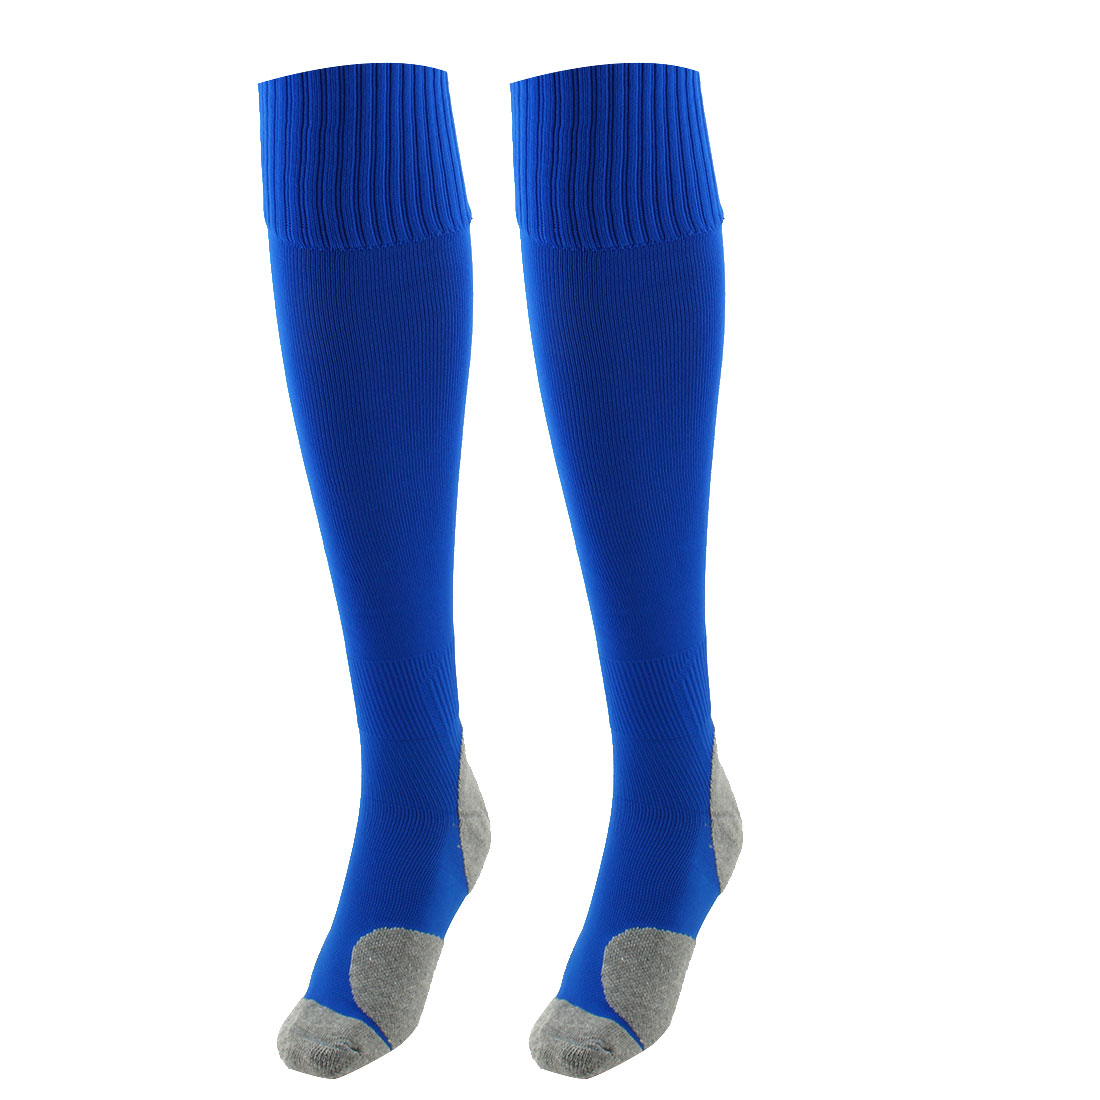 Unisex Nylon Anti Slip Breathable Elastic Volleyball Rugby Football Soccer Long Socks Blue Pair